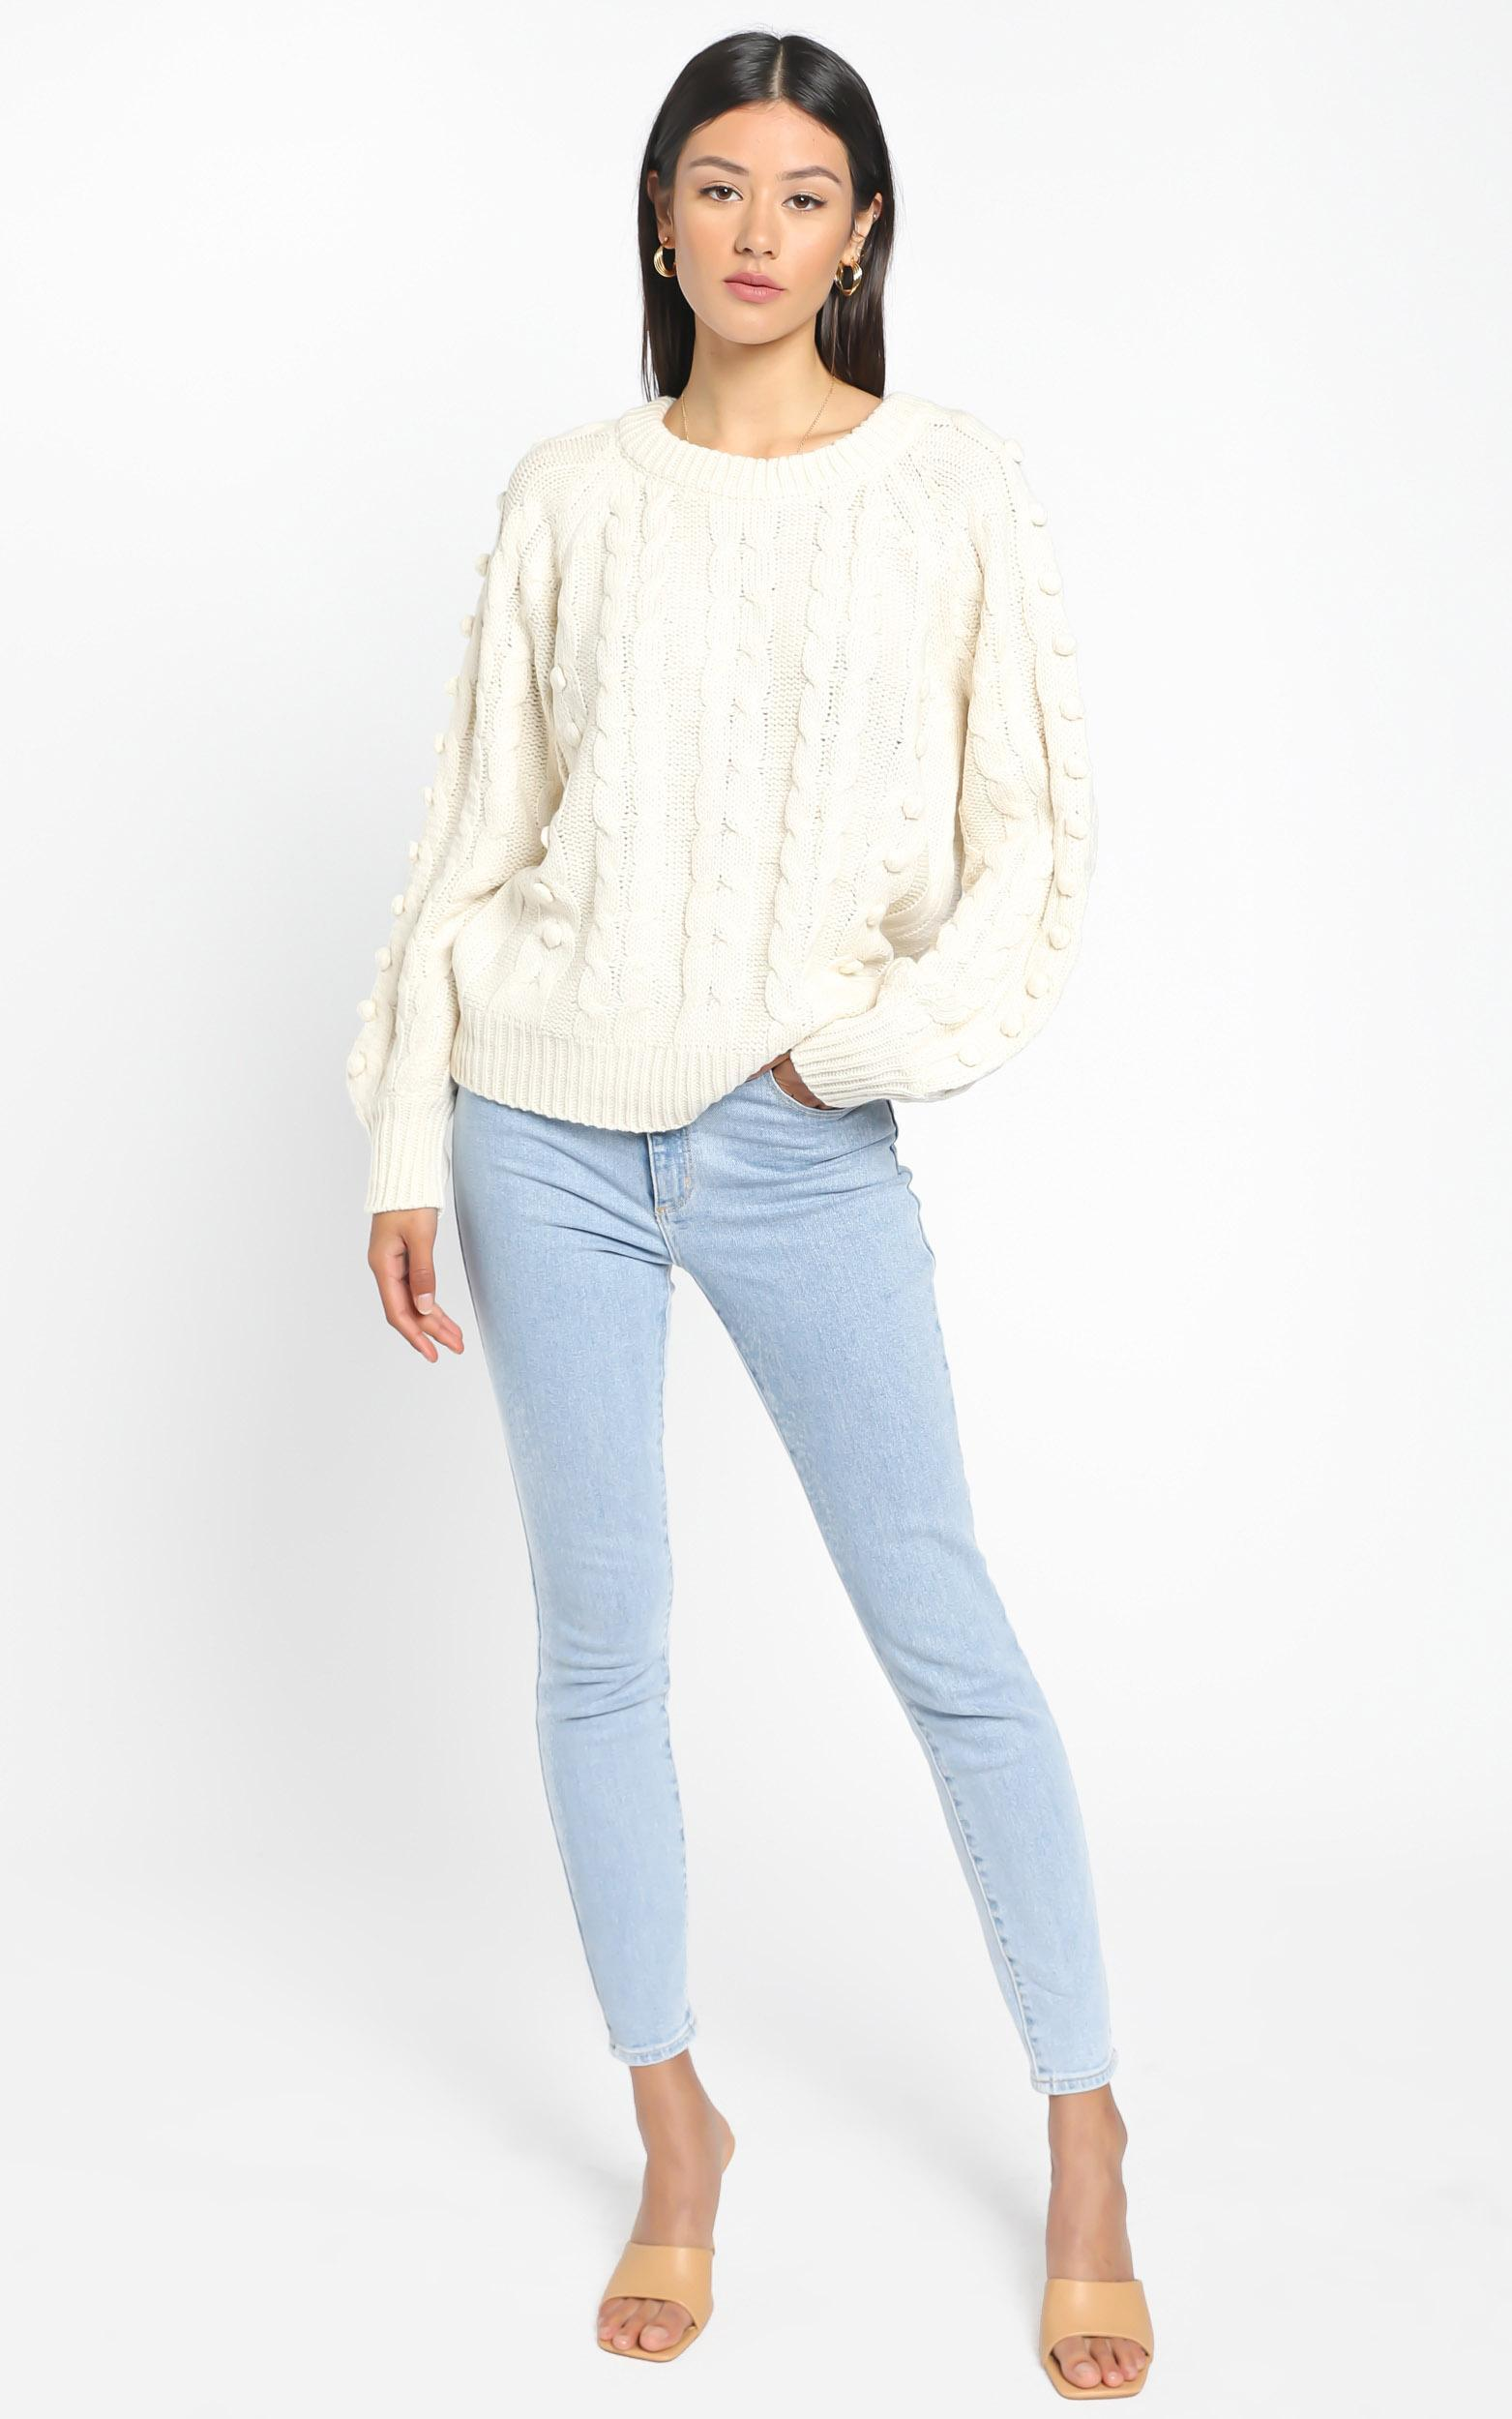 Brianna Bobble Knit In Cream - M/L, Cream, hi-res image number null